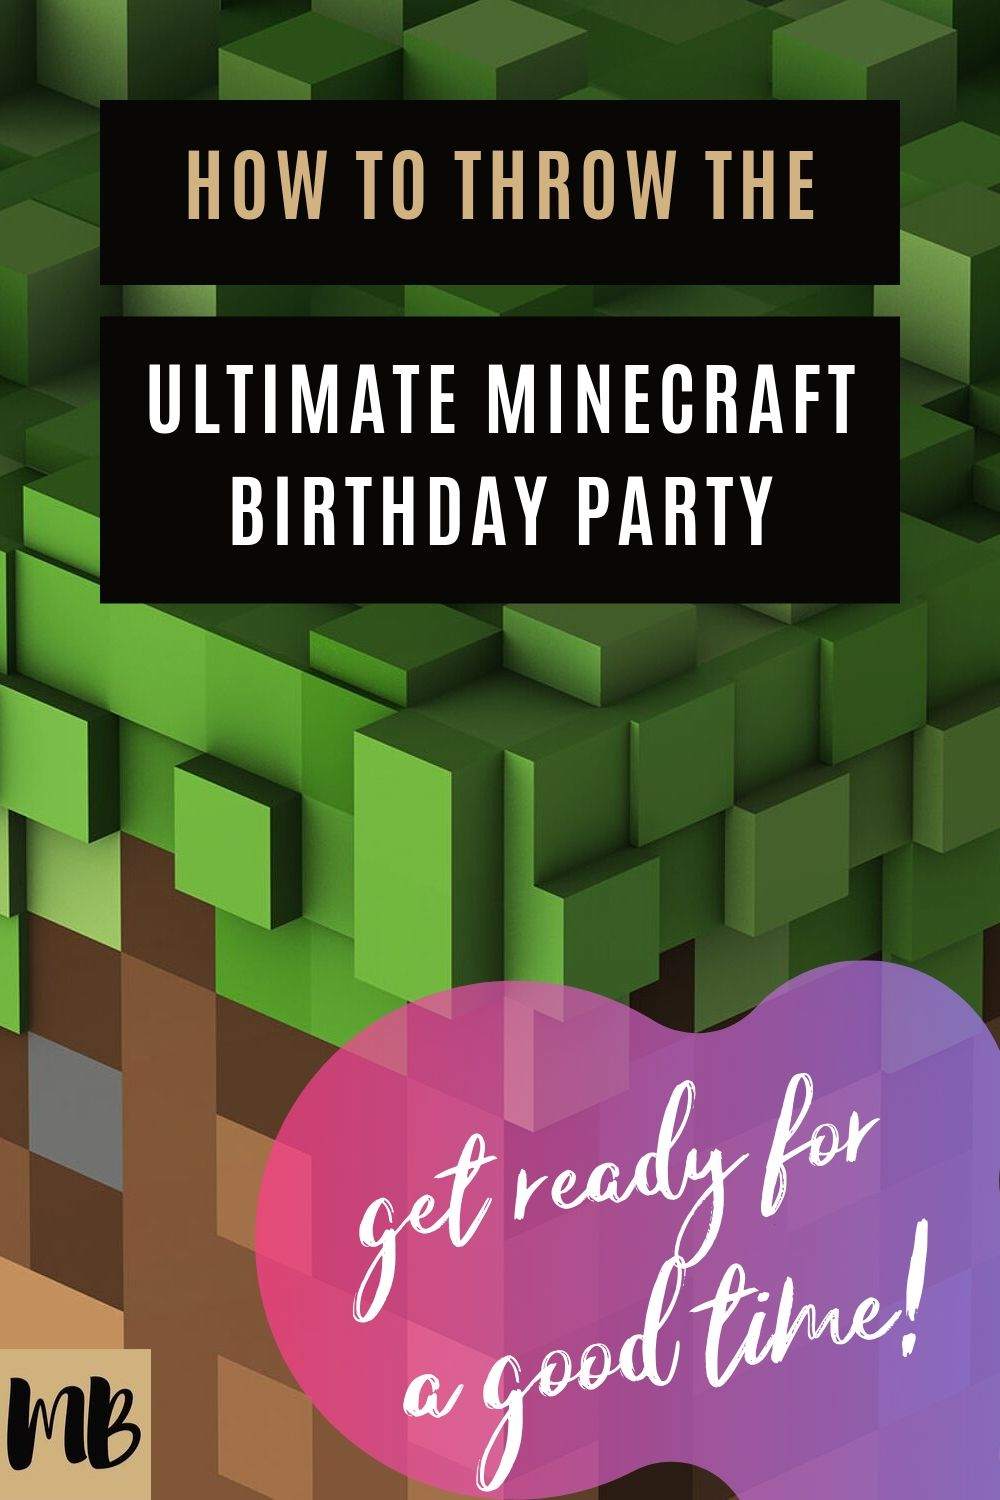 ultimate guide how to throw the ultimate minecraft birthday party drinks food cake games decorations